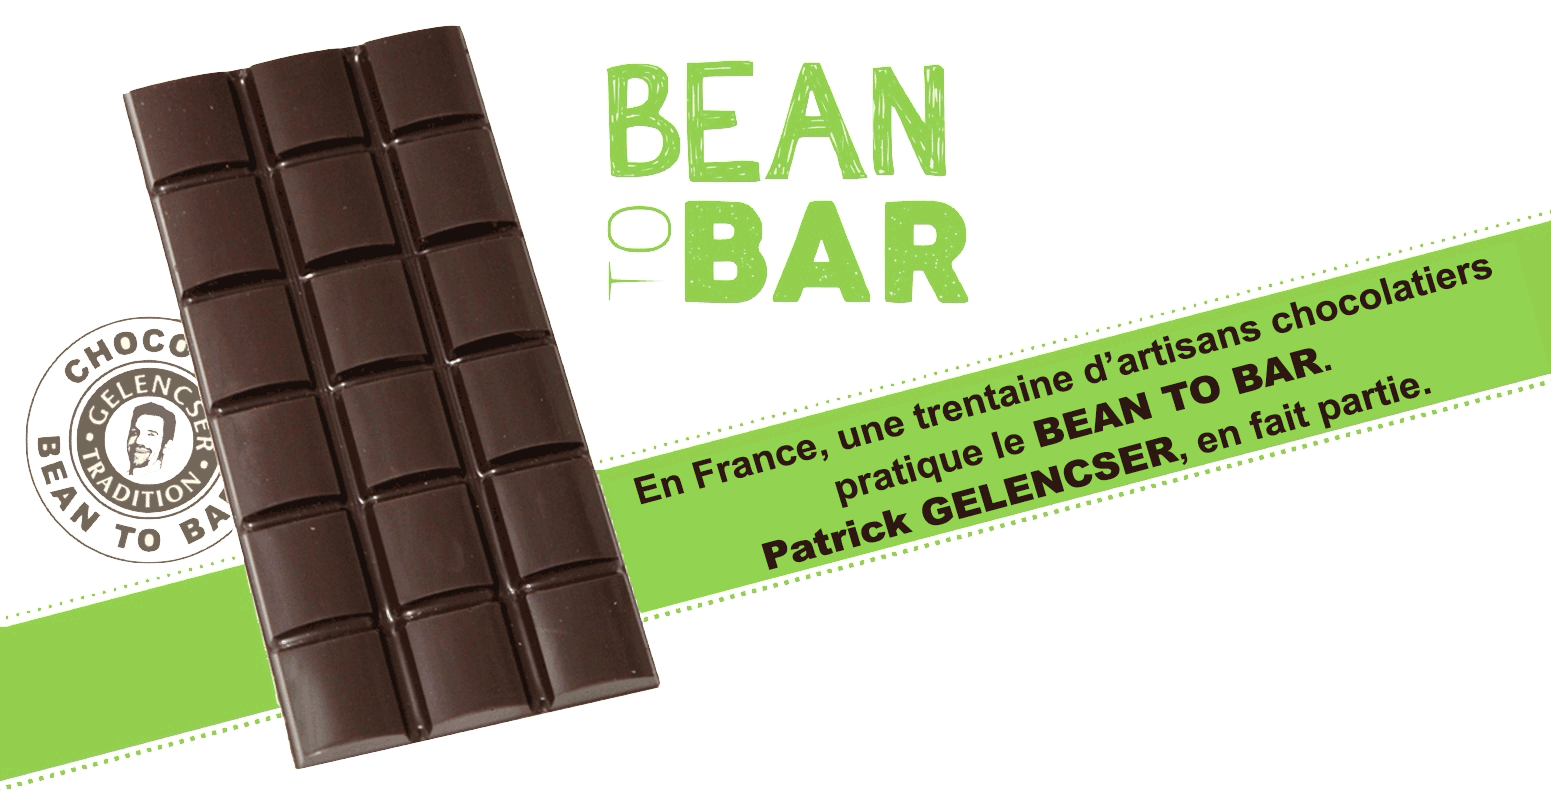 Bean to bar, chocolaterie Gelencser, la Roche sur Yon, Vendée